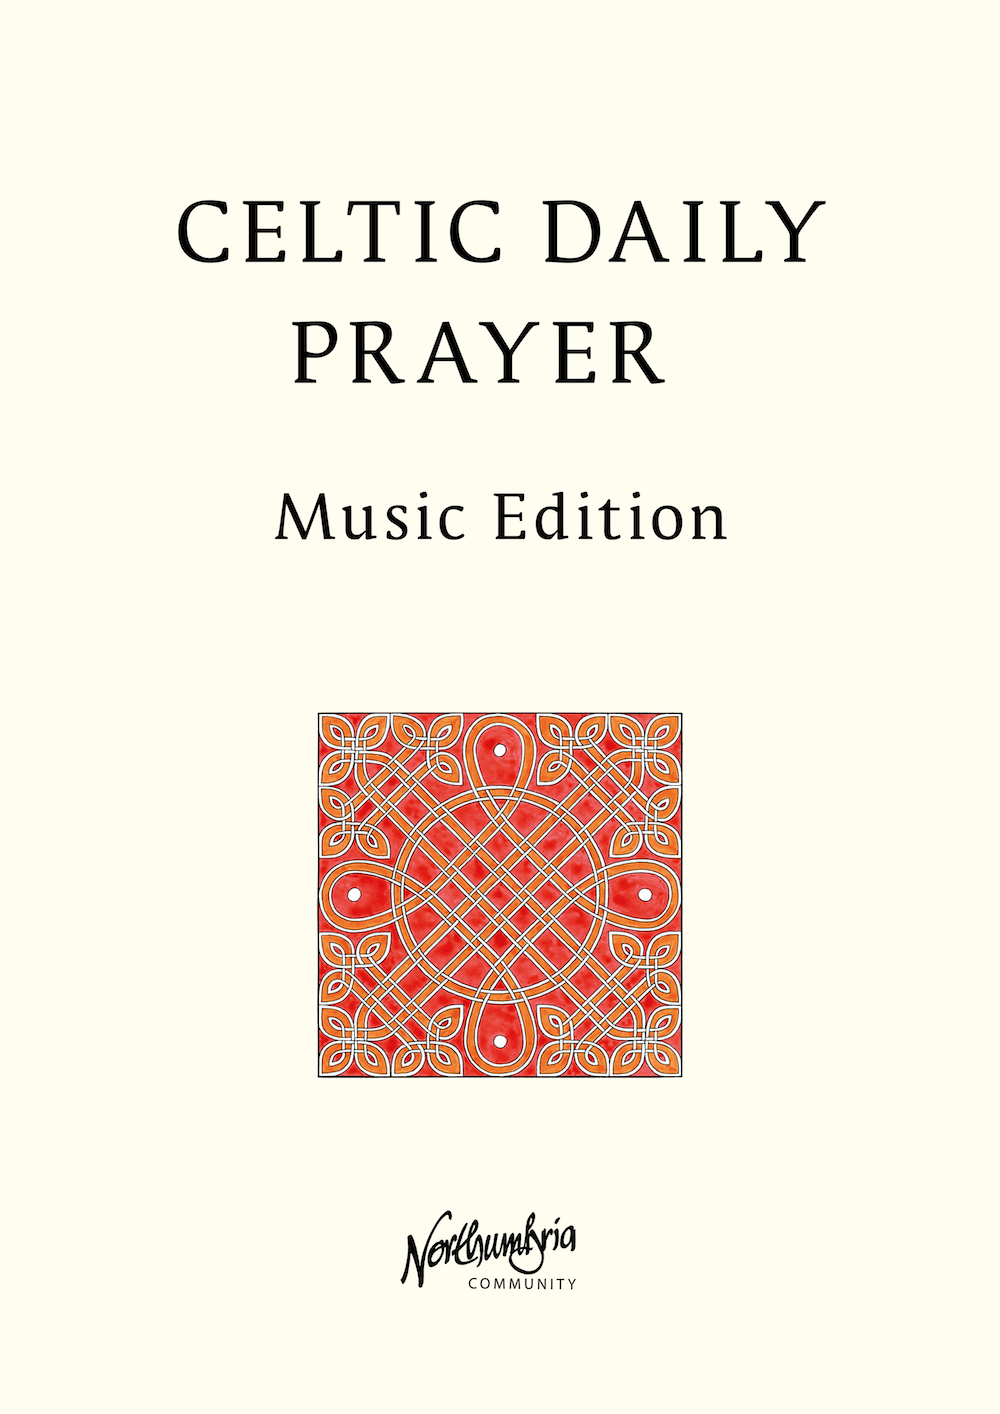 Celtic Daily Prayer Music Edition